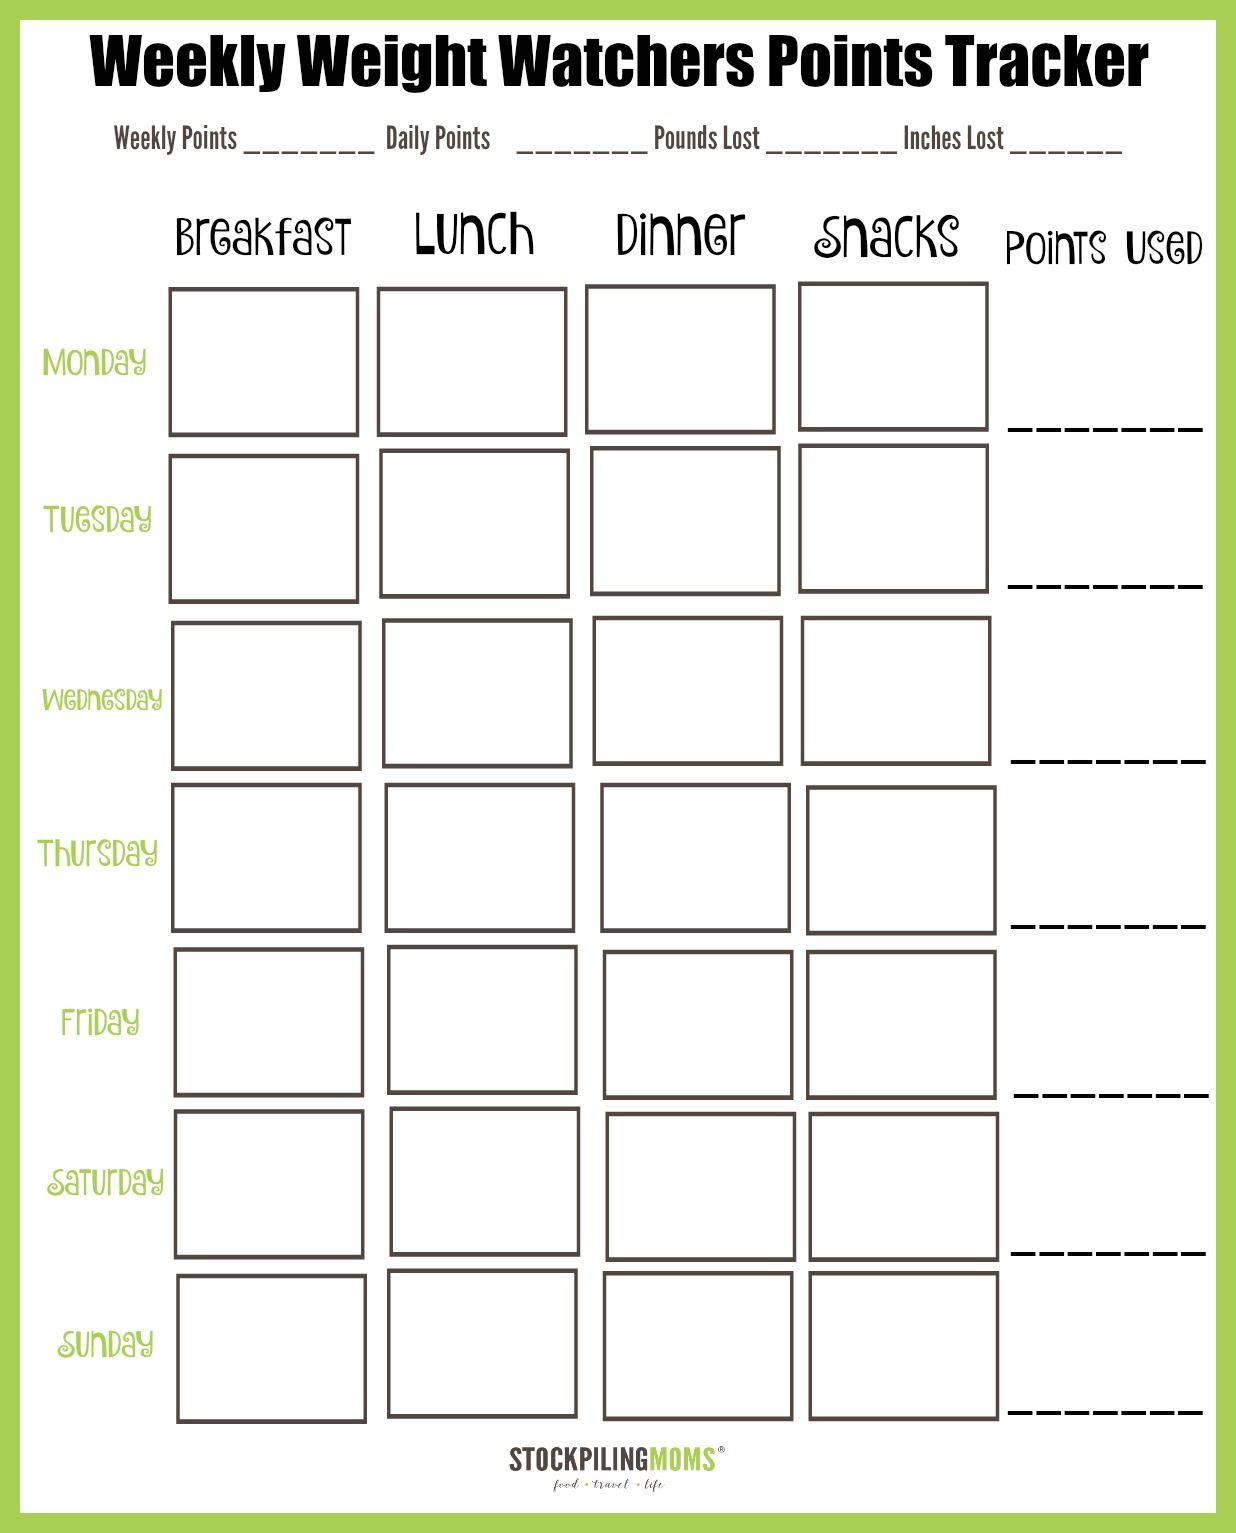 Weight Watchers Weekly Points Tracker Free Printable